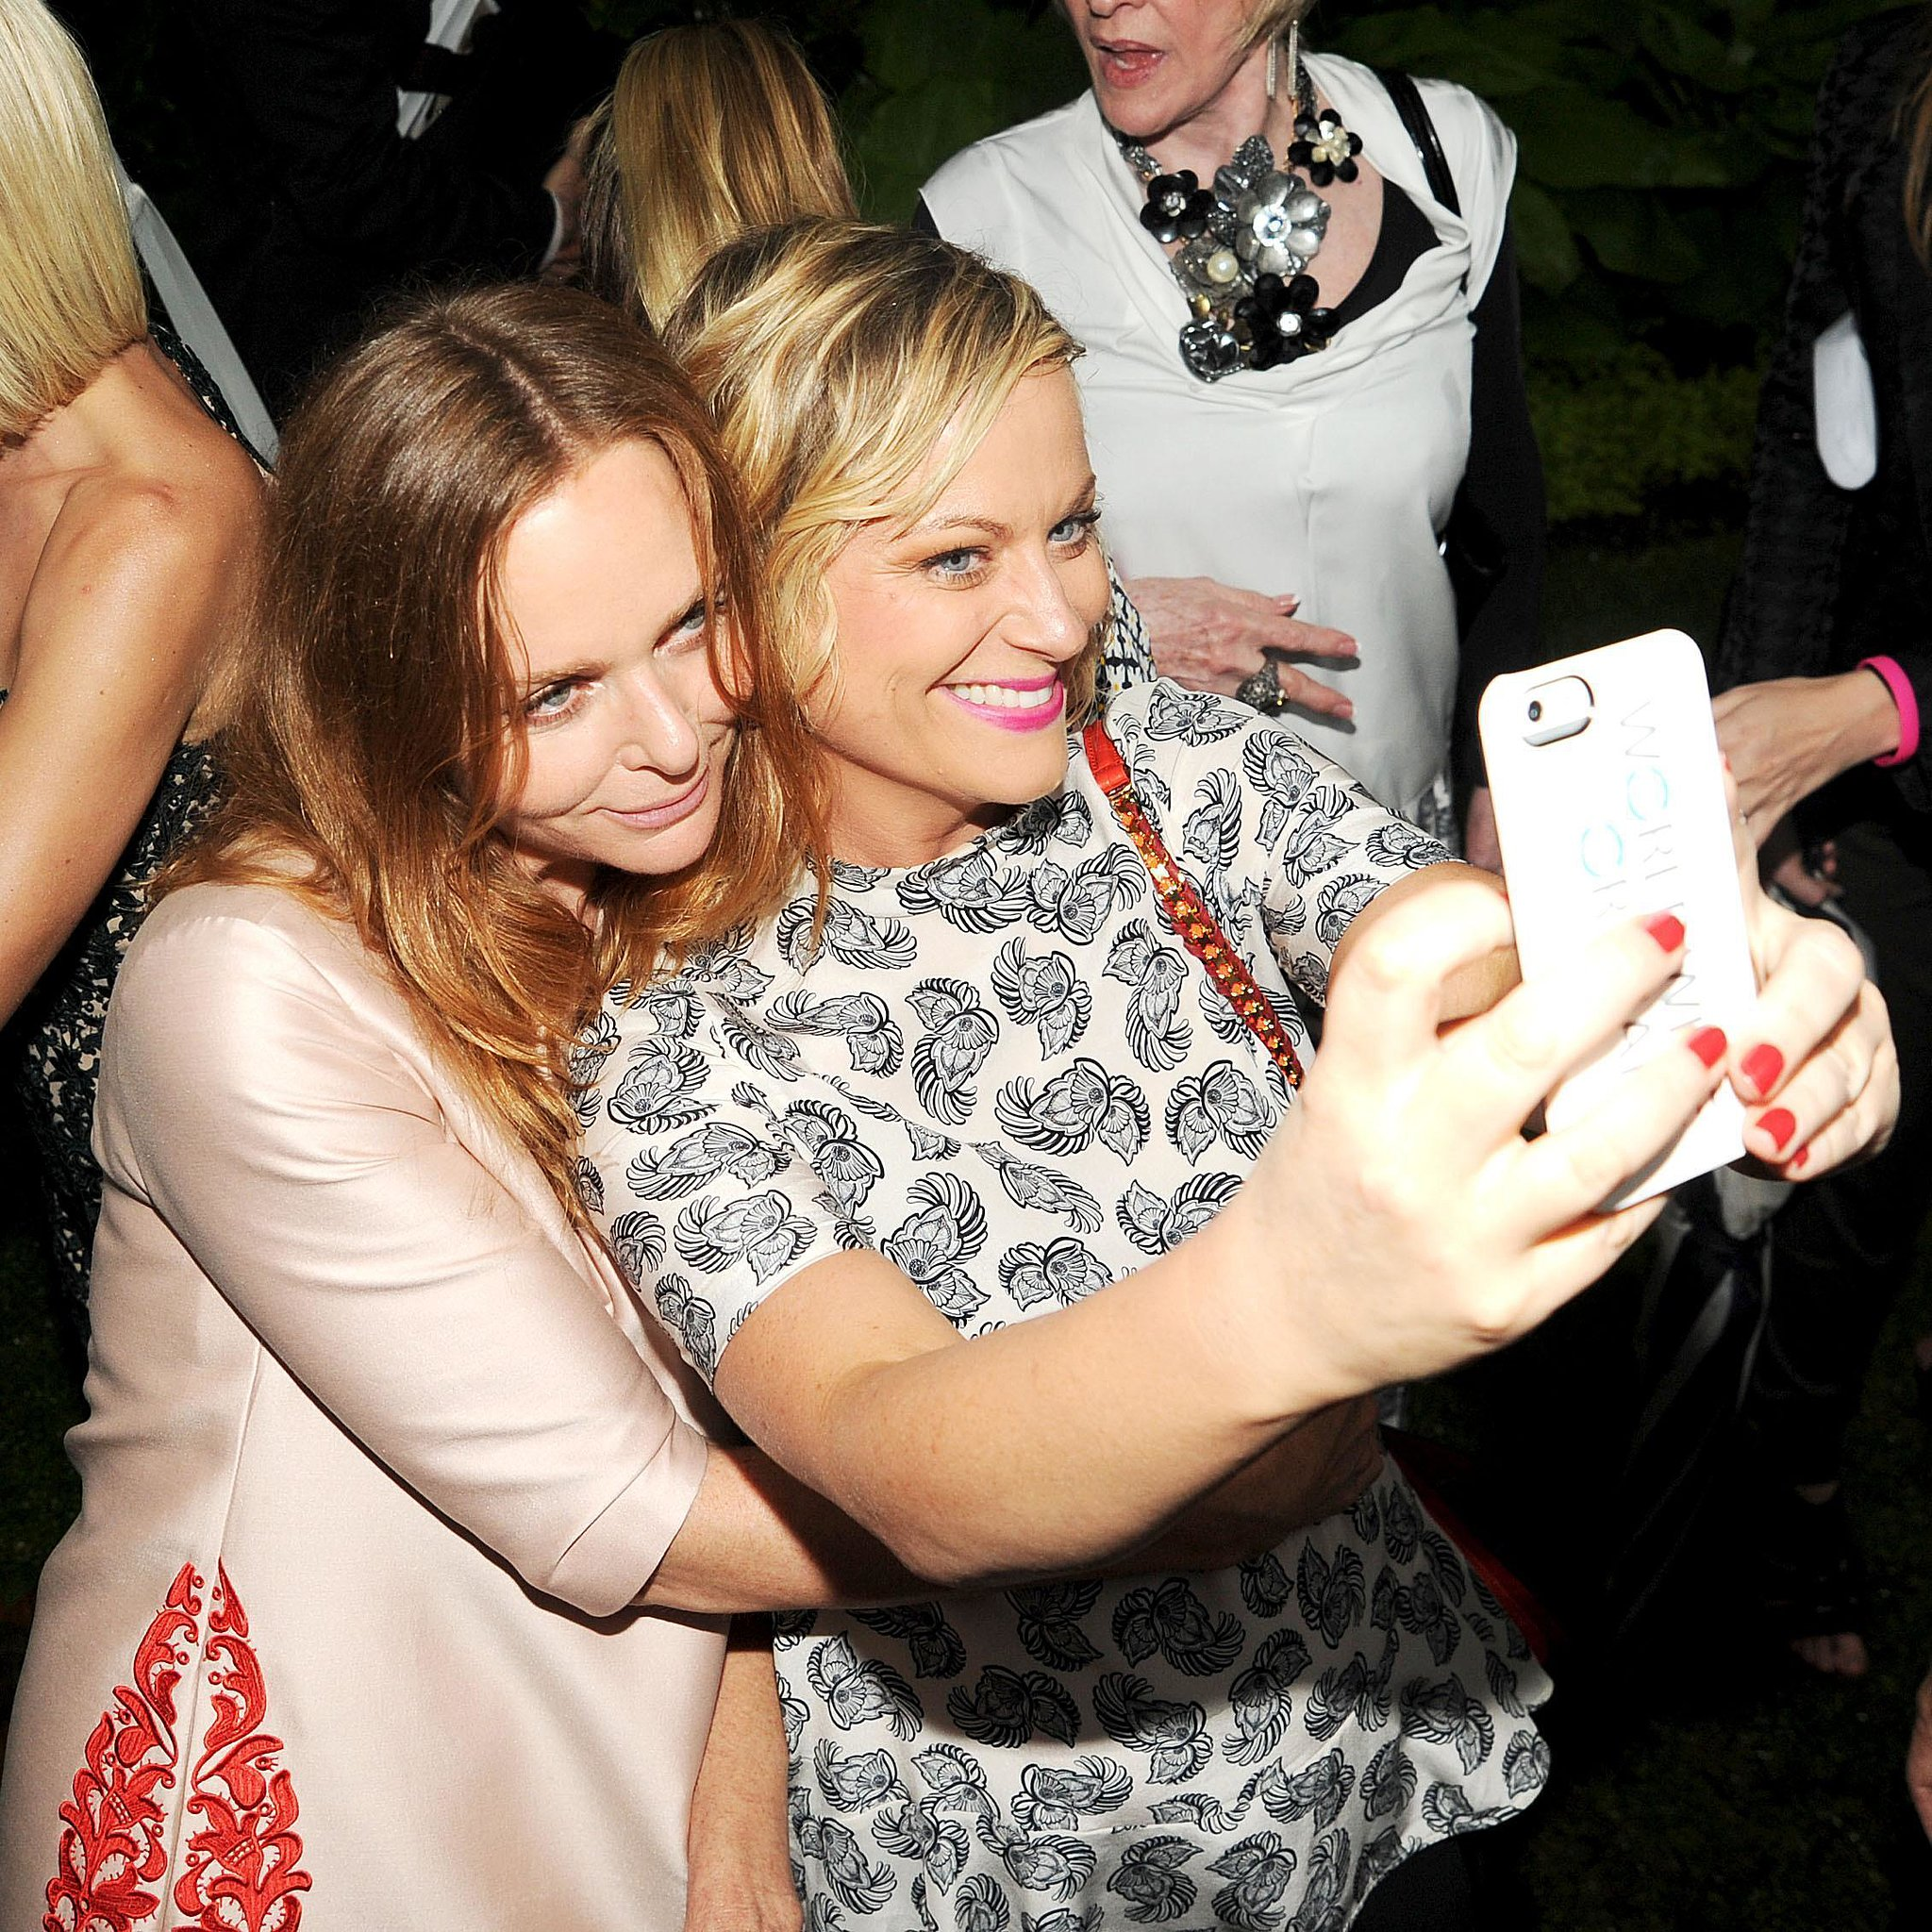 In June 2013, Amy Poehler snapped a selfie with Stella McCartney at Stella's Spring 2014 presentation in NYC.